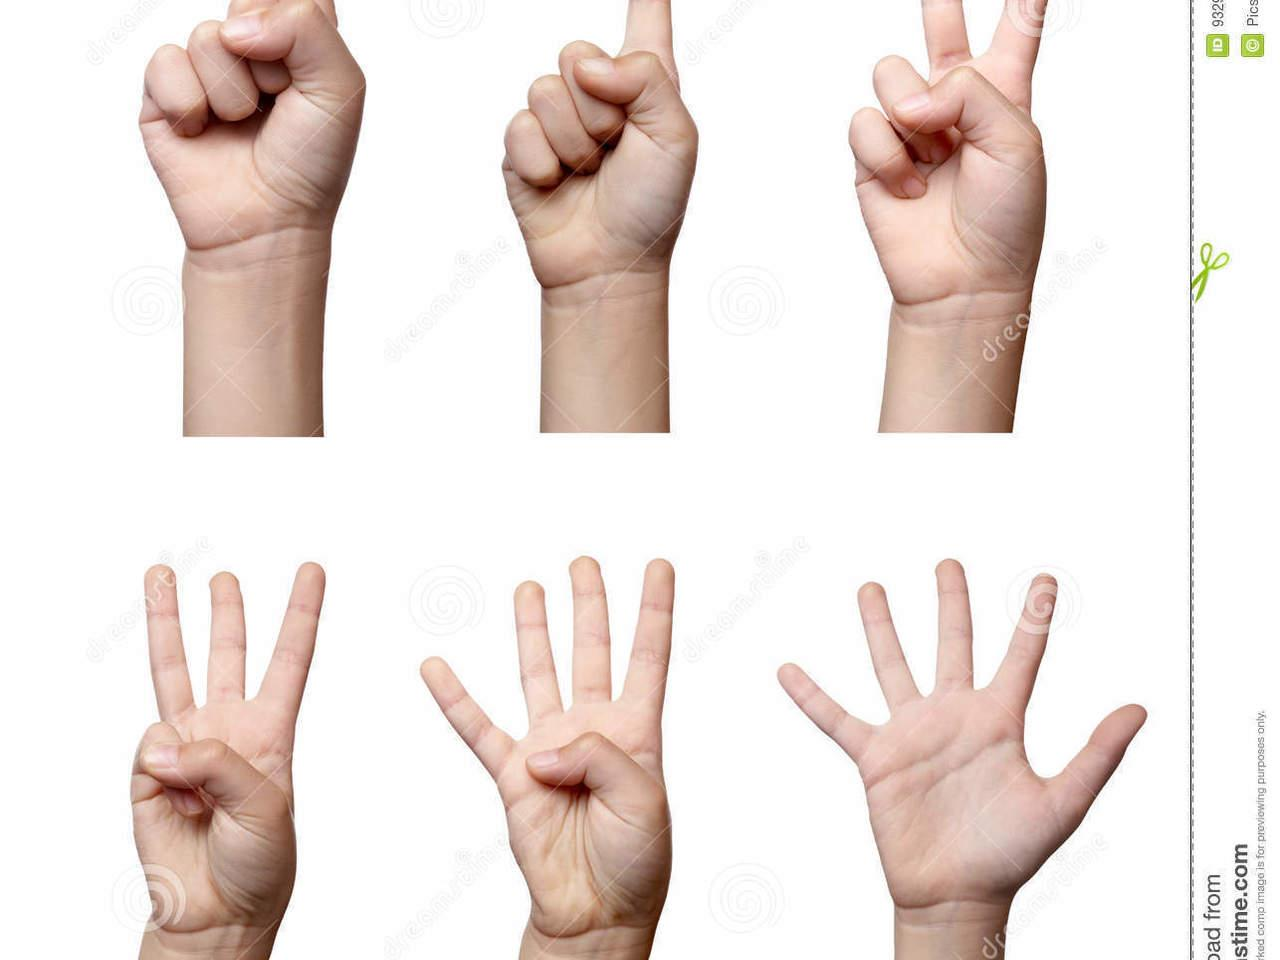 Hand Gesture Recognition Using Neural Networks and Image Processing